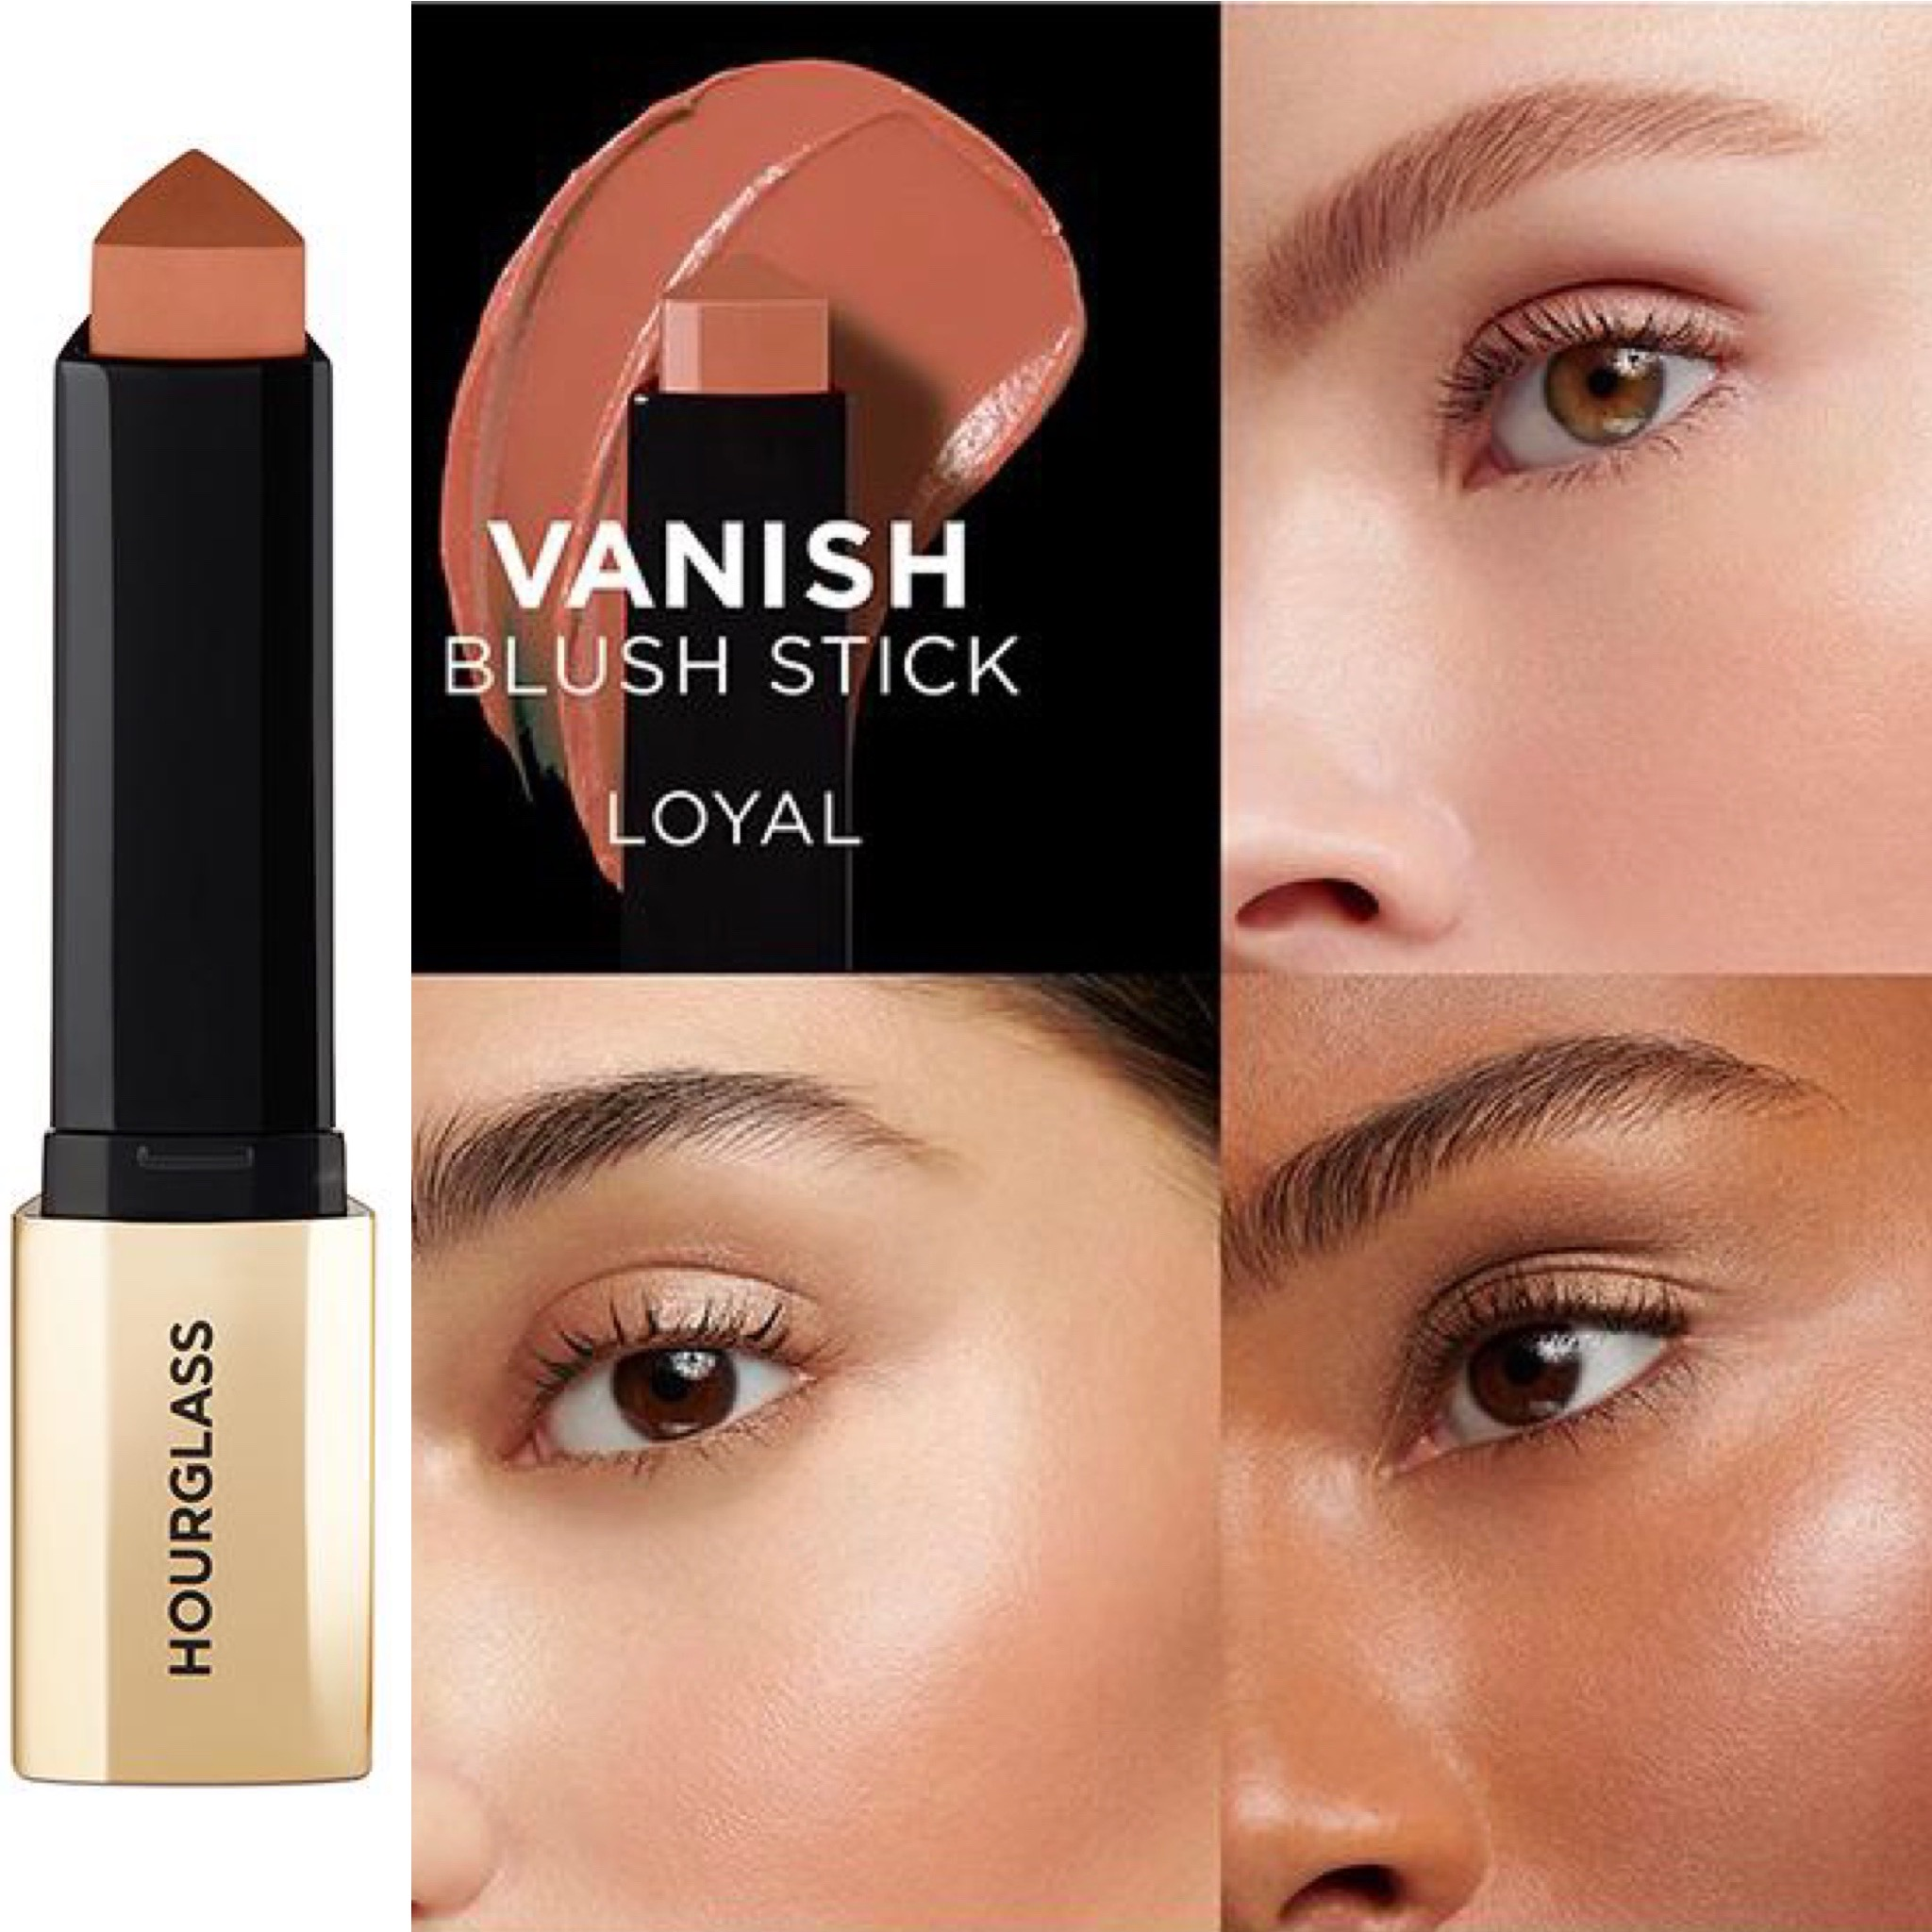 Hourglass Vanish Blush Stick